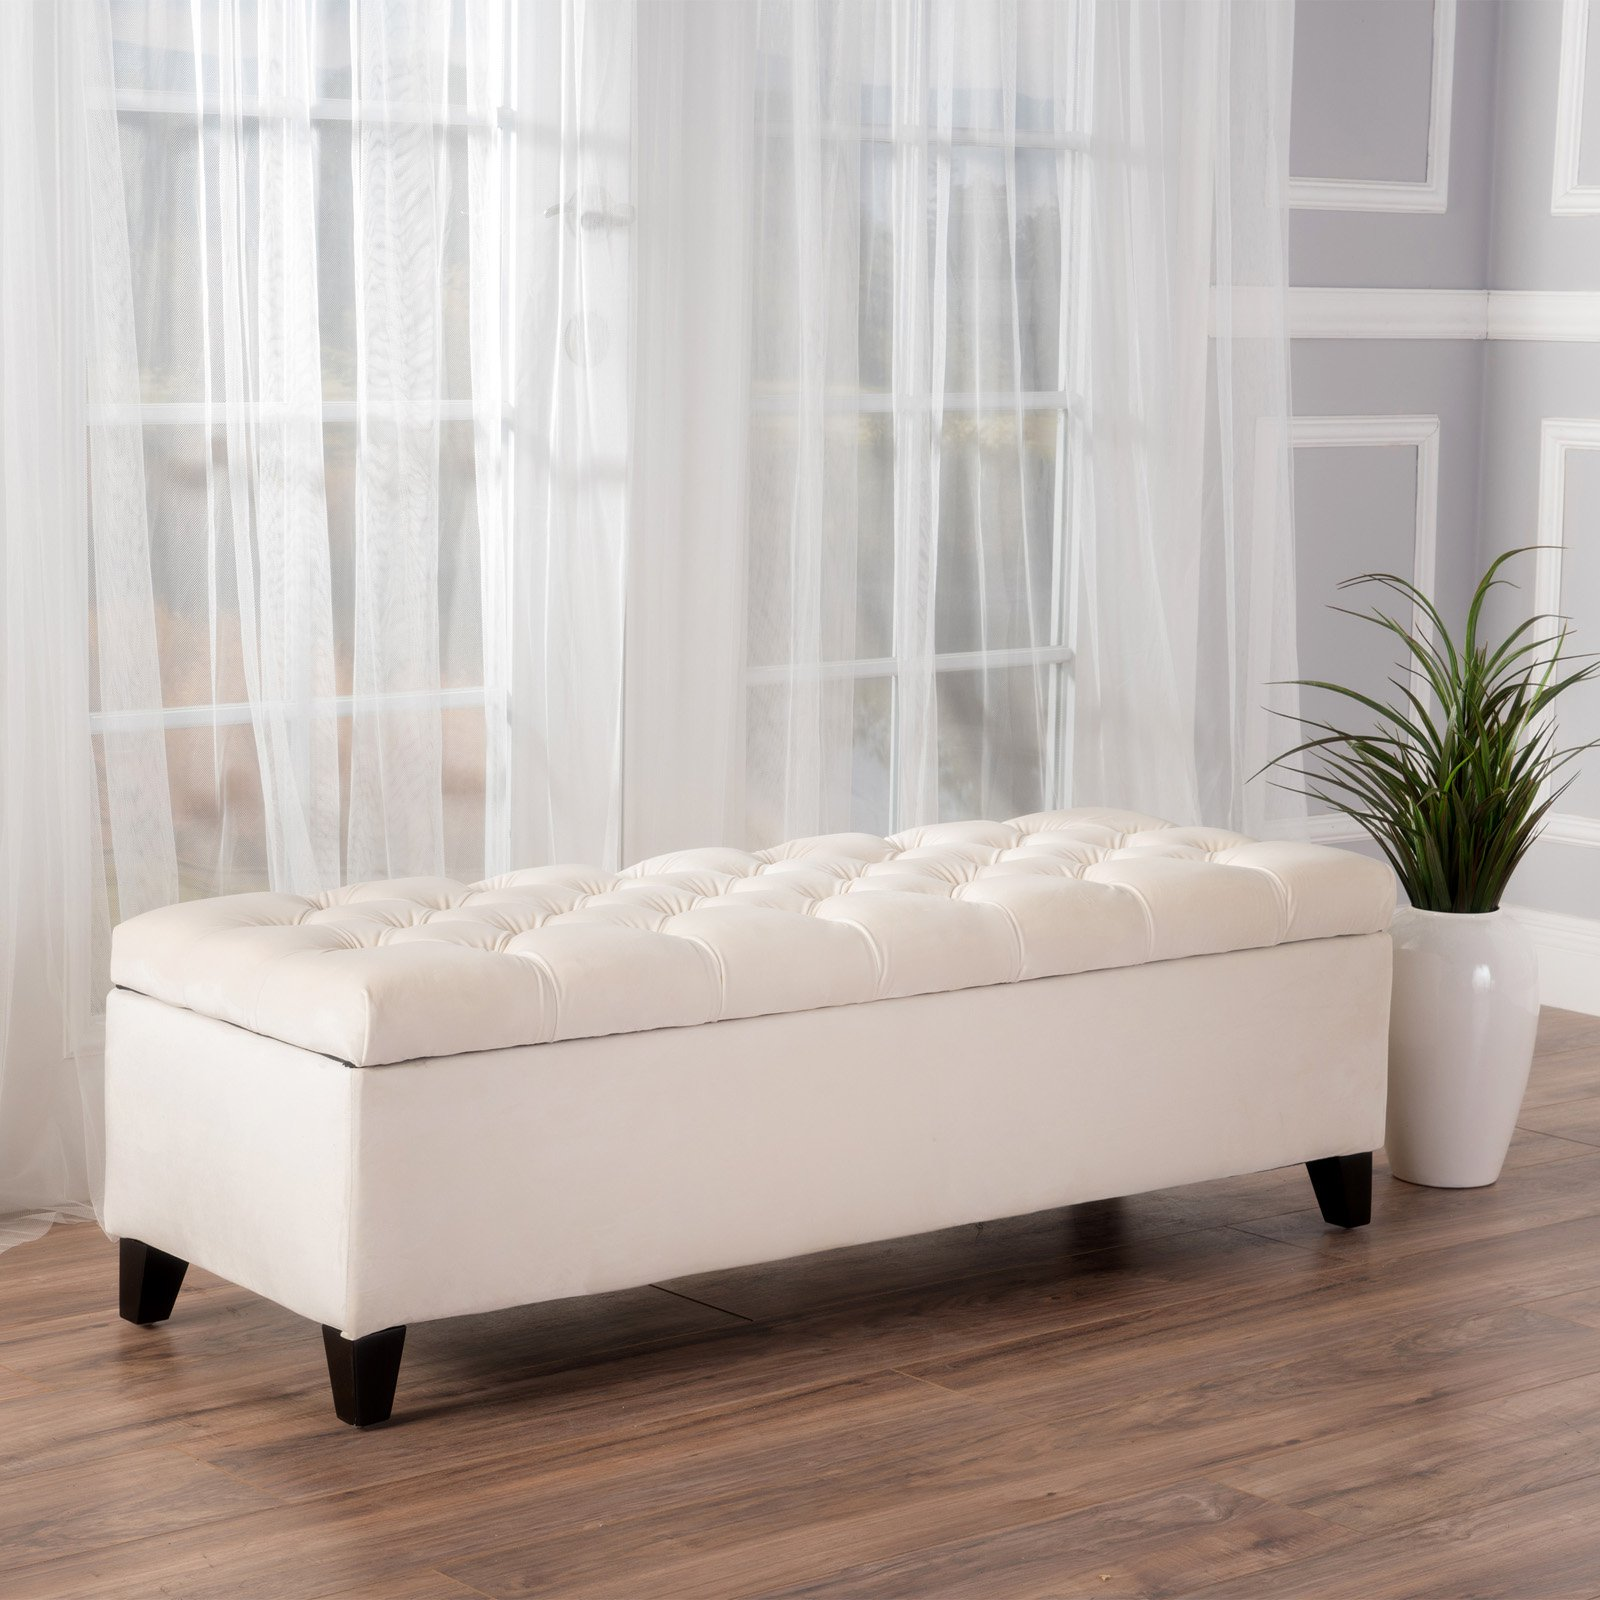 Oliver New Velvet Storage Indoor Bench